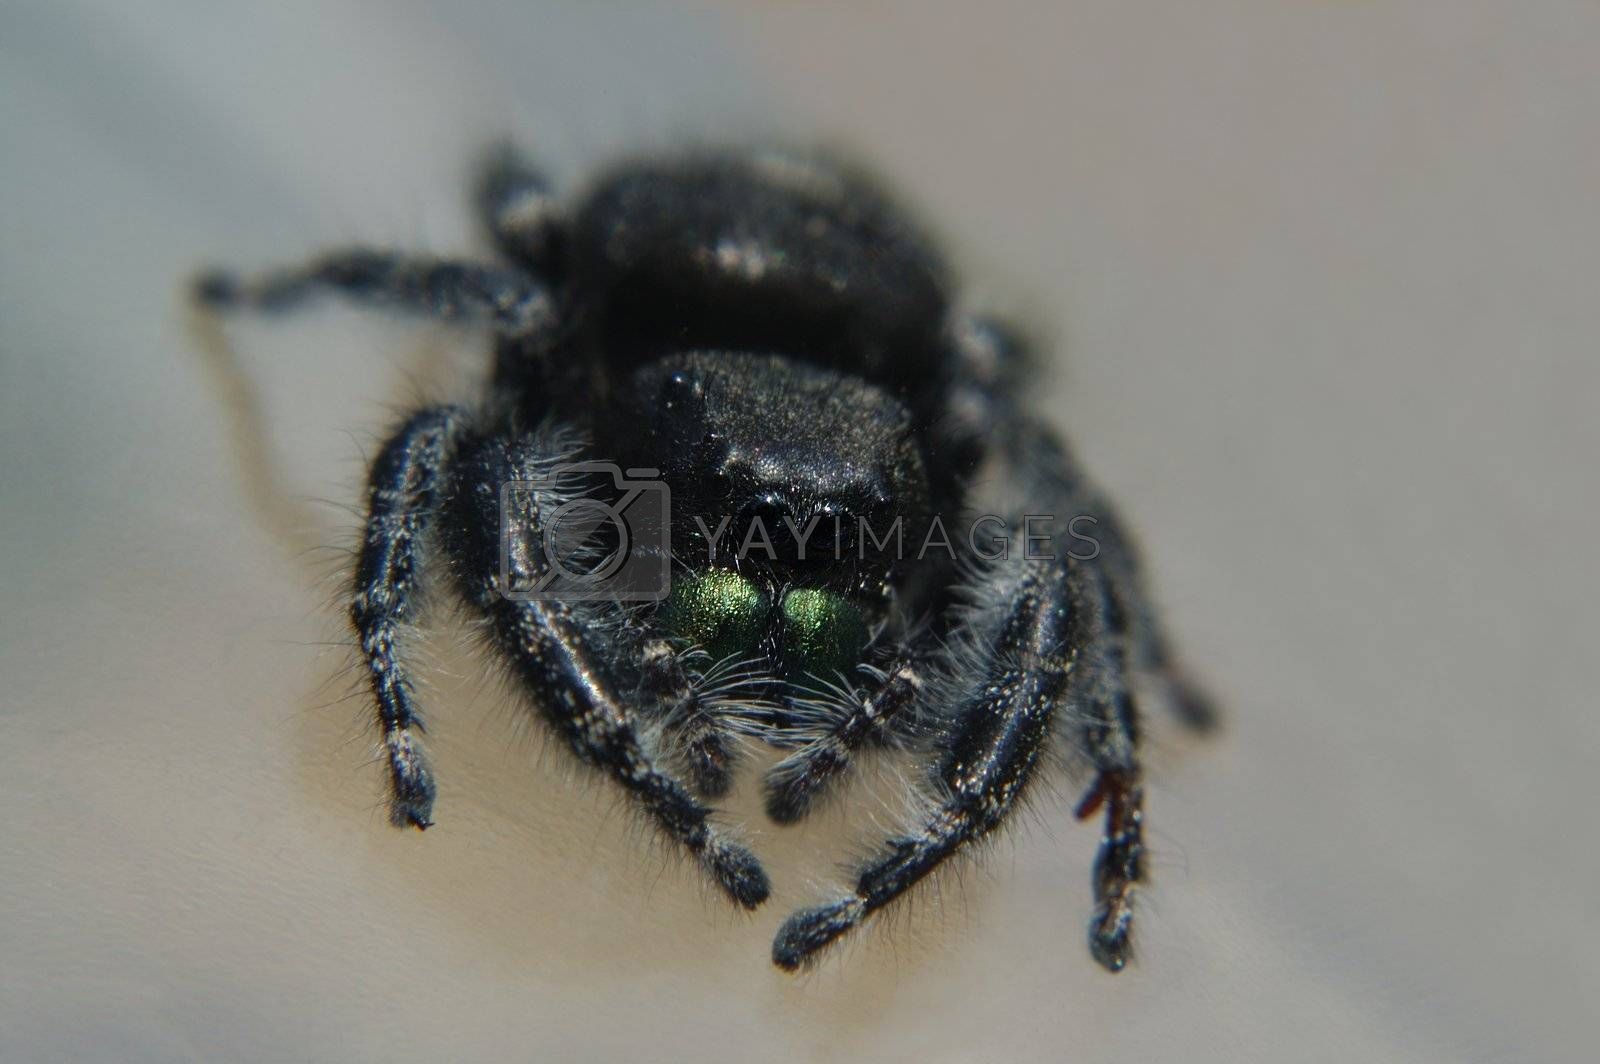 Macro of a jumping spider